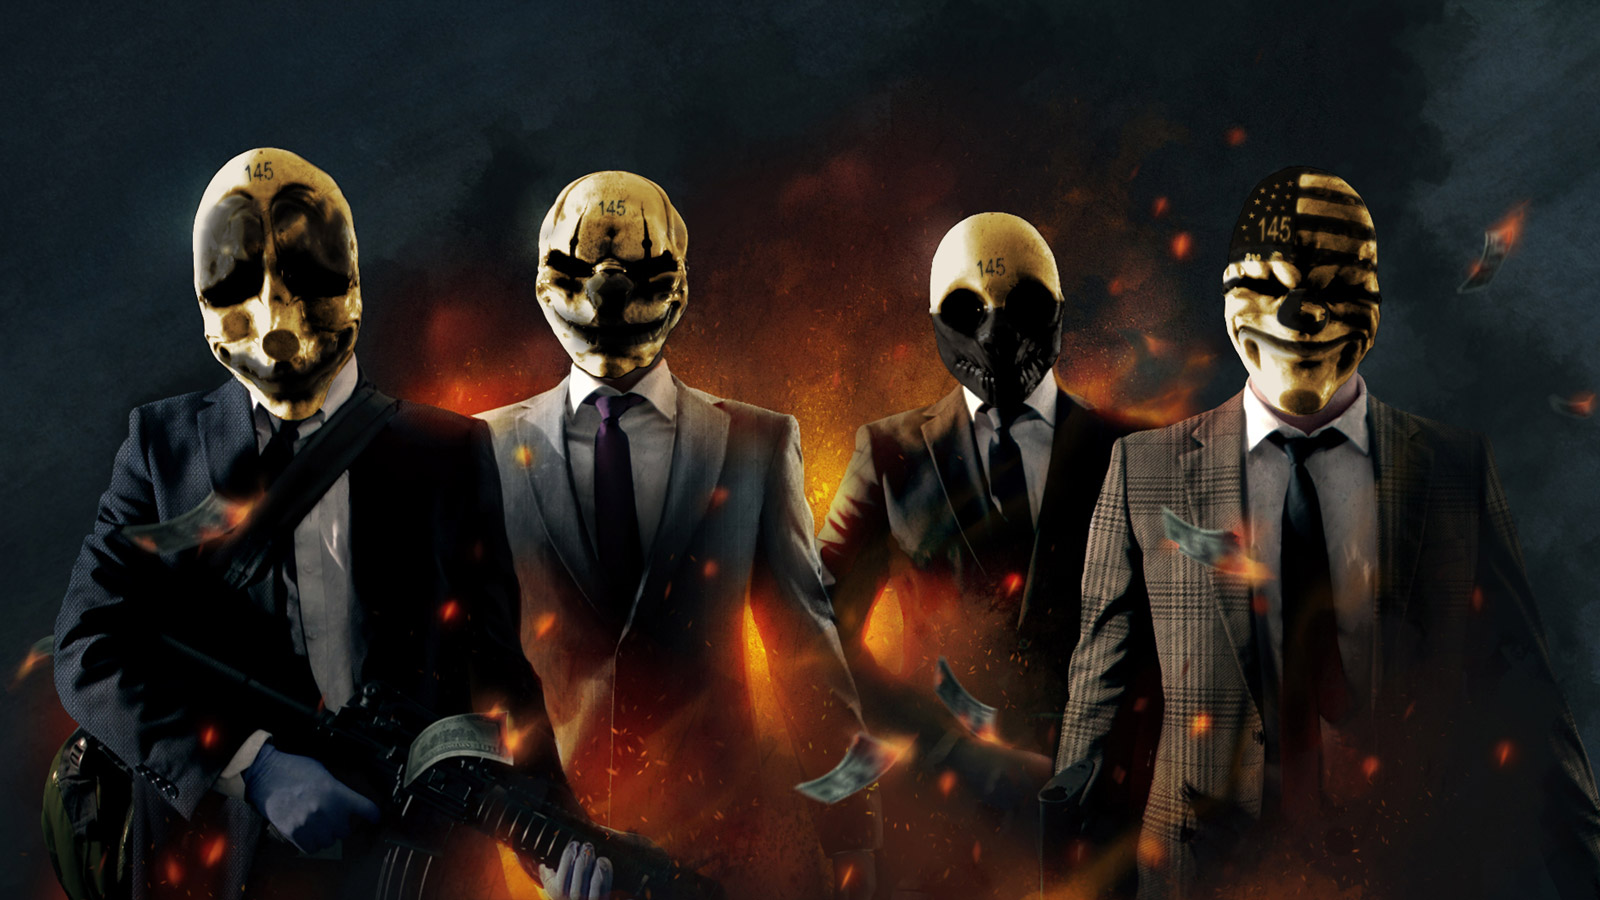 Free Payday: The Heist Wallpaper in 1600x900